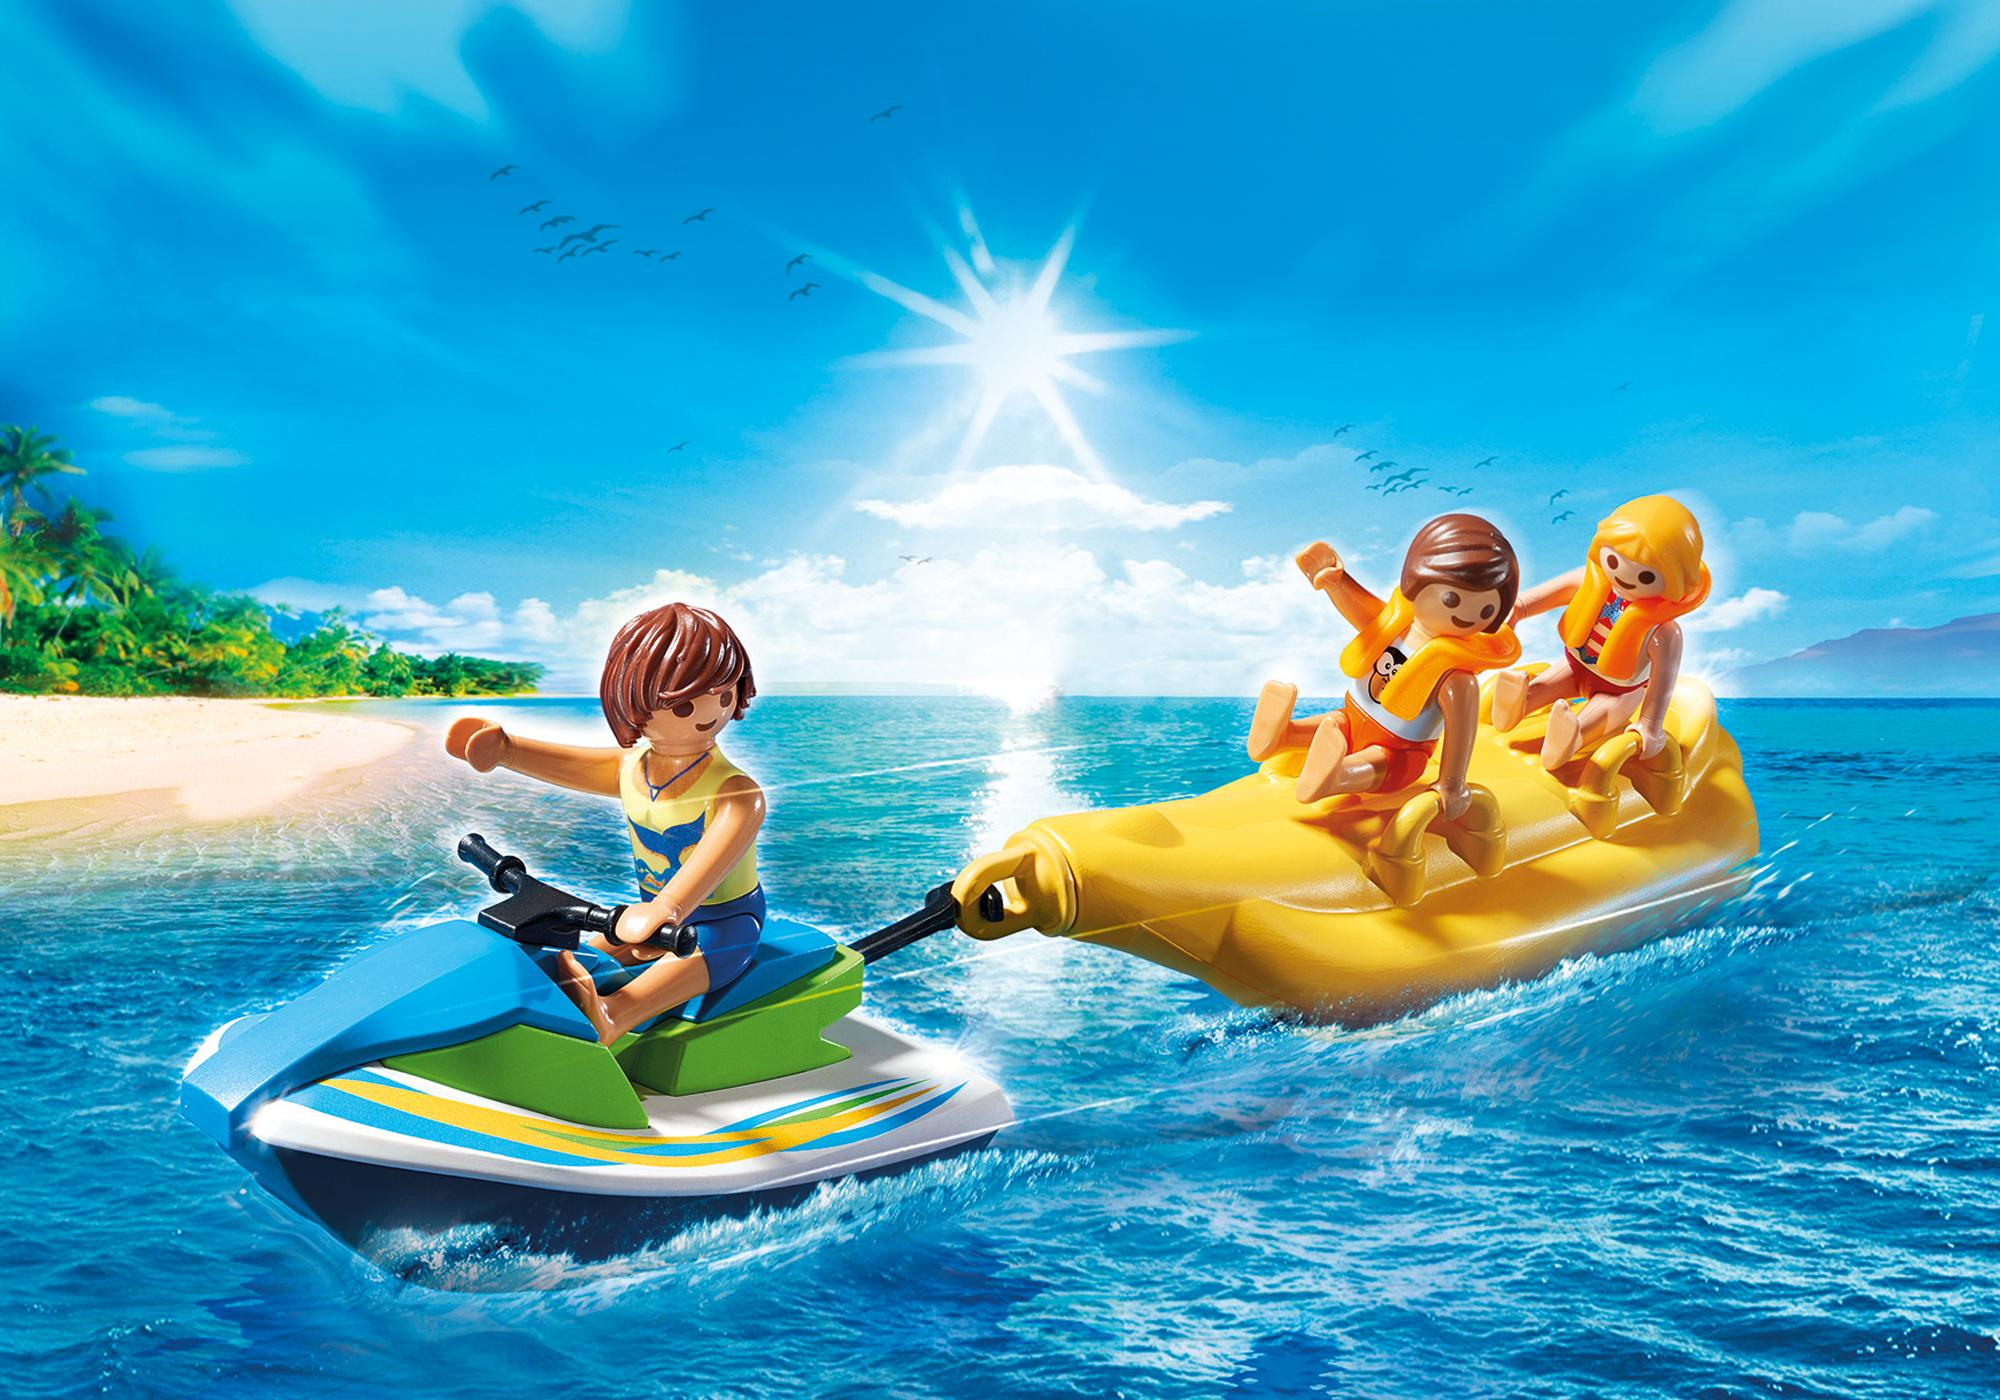 http://media.playmobil.com/i/playmobil/6980_product_detail/Personal Watercraft with Banana Boat